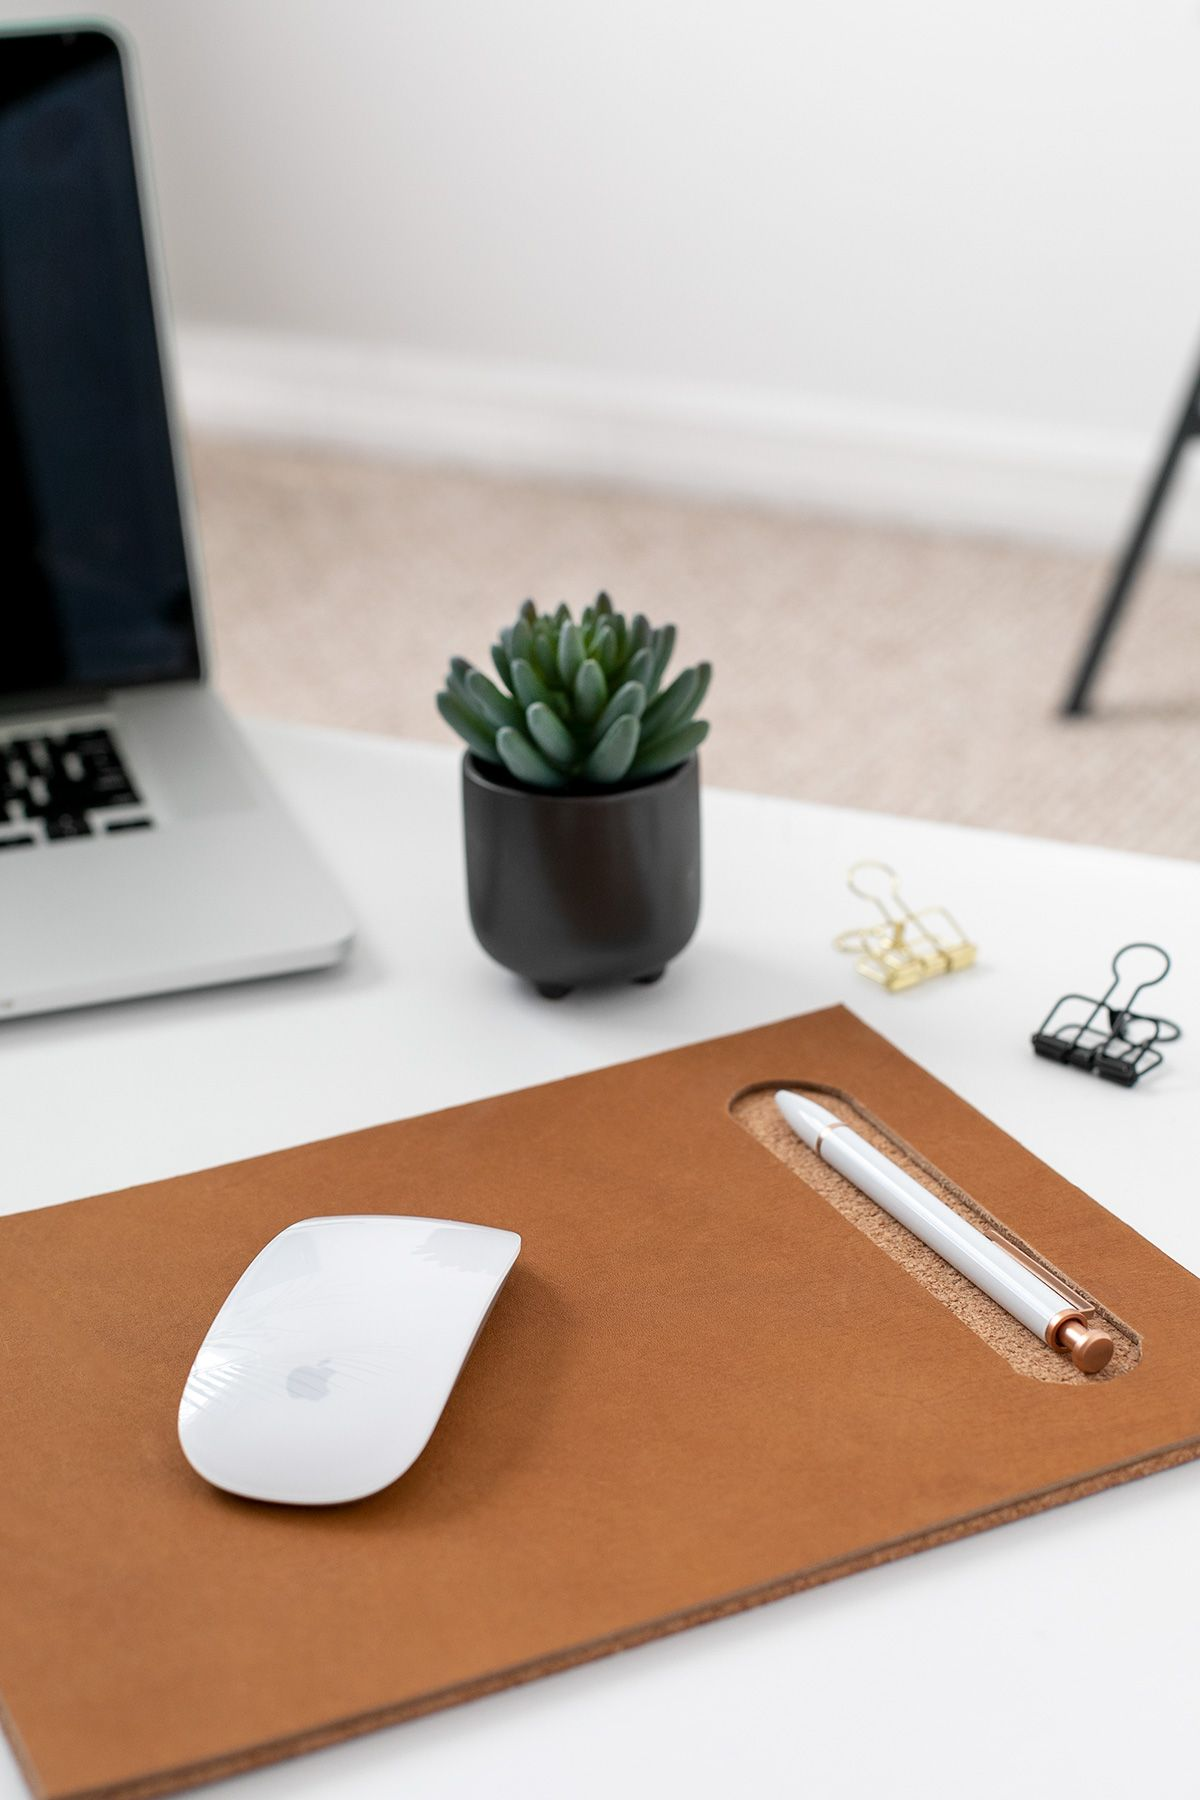 Diy Leather Cork Mousepad With Pen Groove To Keep The Ideas Flowing In 2020 Leather Mouse Pad Leather Diy Diy Mouse Pad